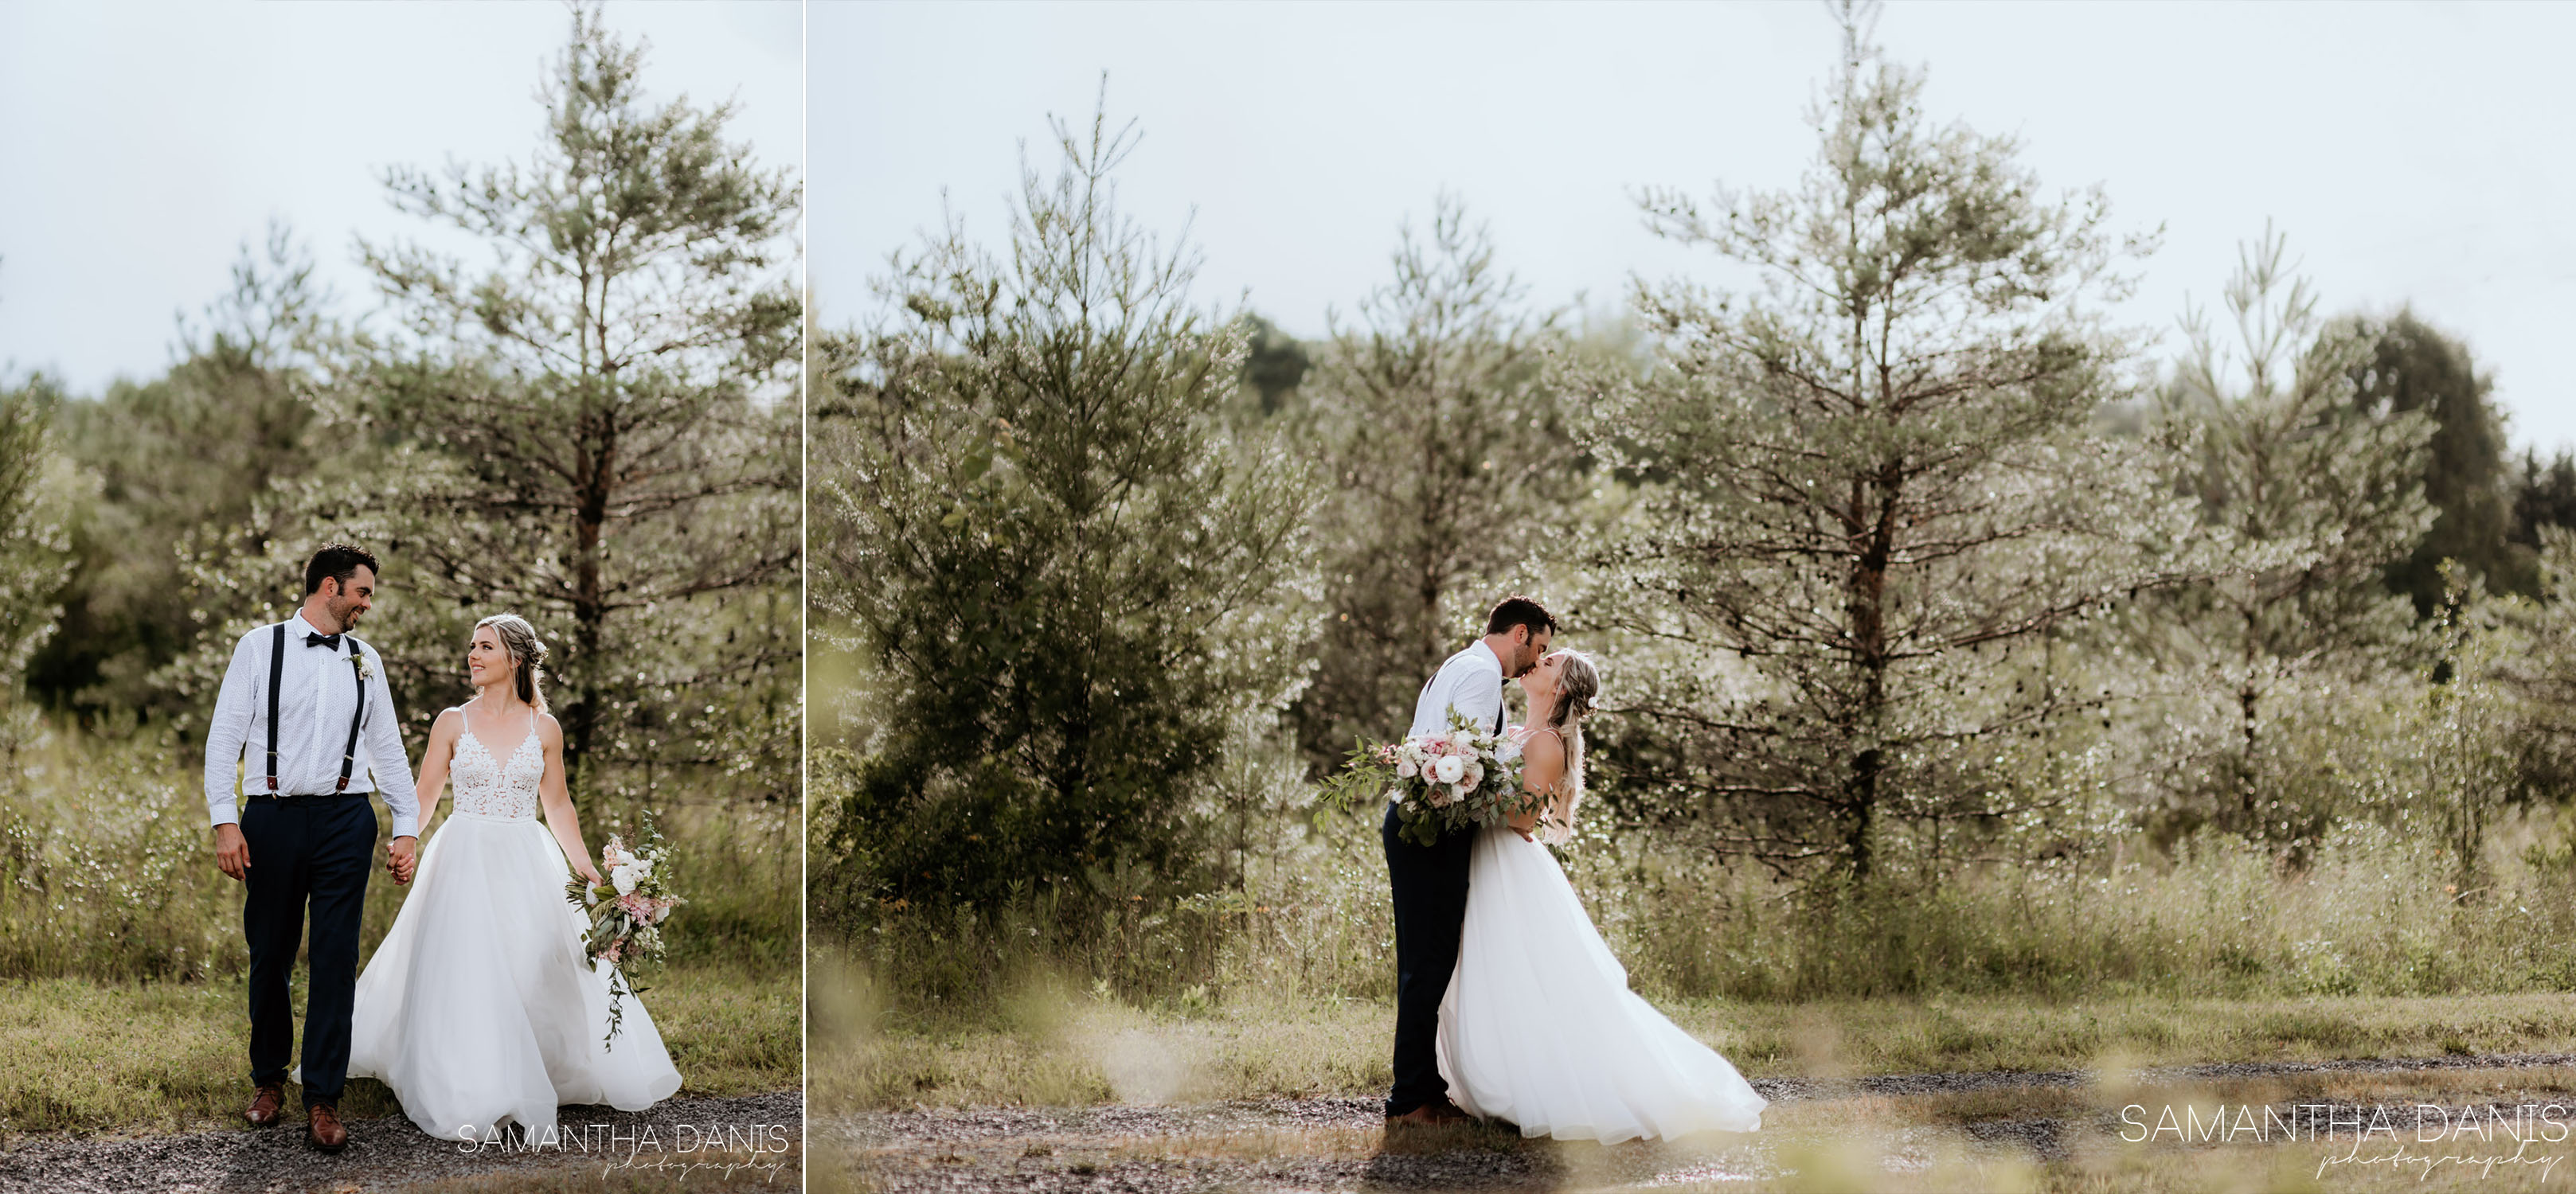 Ottawa Wedding Photographer Samantha Danis Photography Osgoode Sunset Backyard Barn Wedding